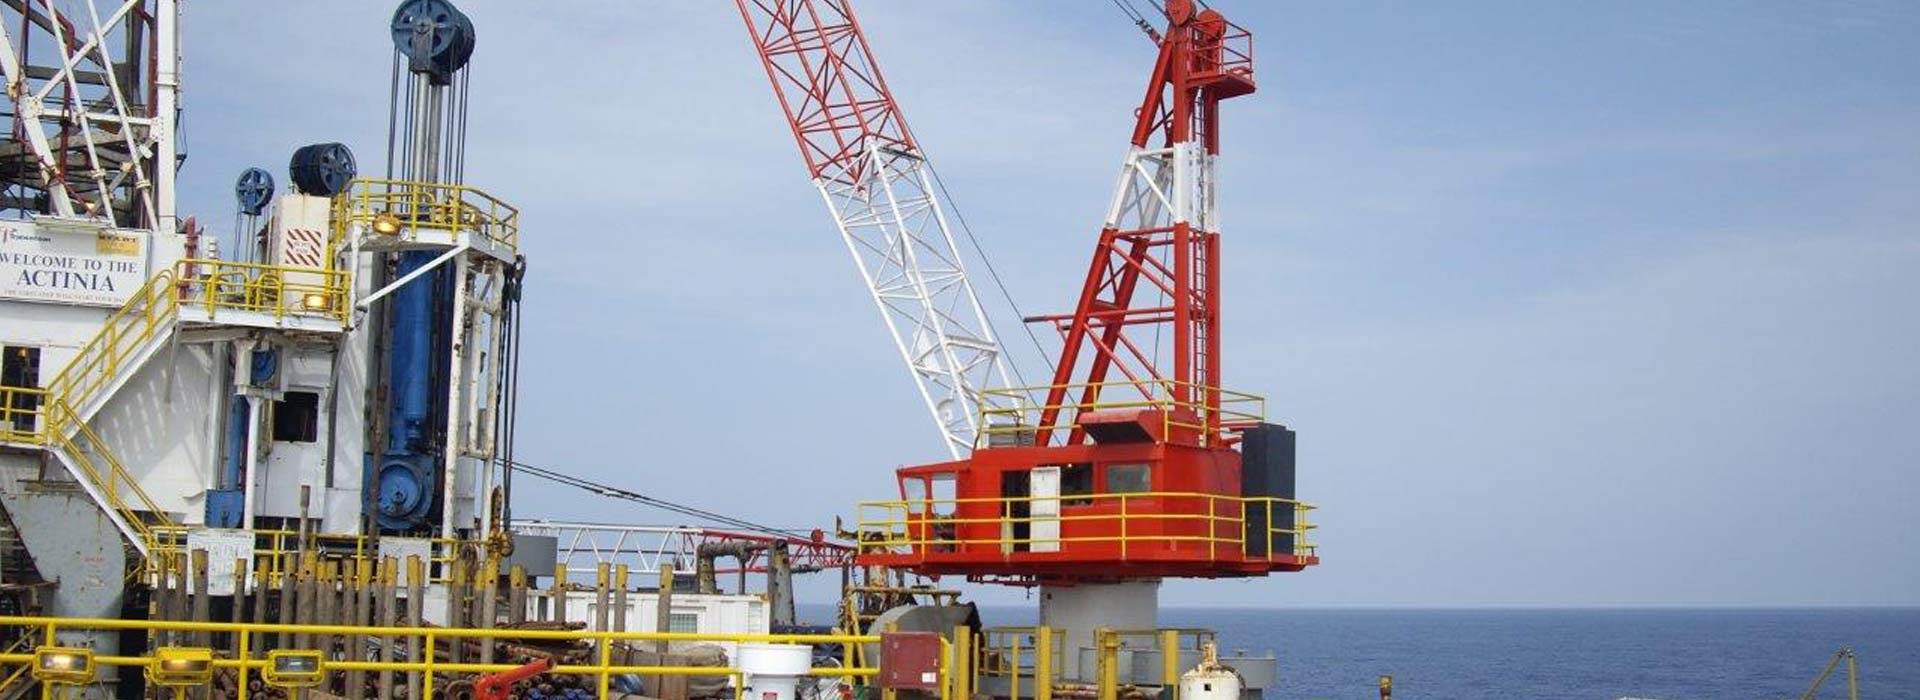 industrial licencing solutions off shore oil rig